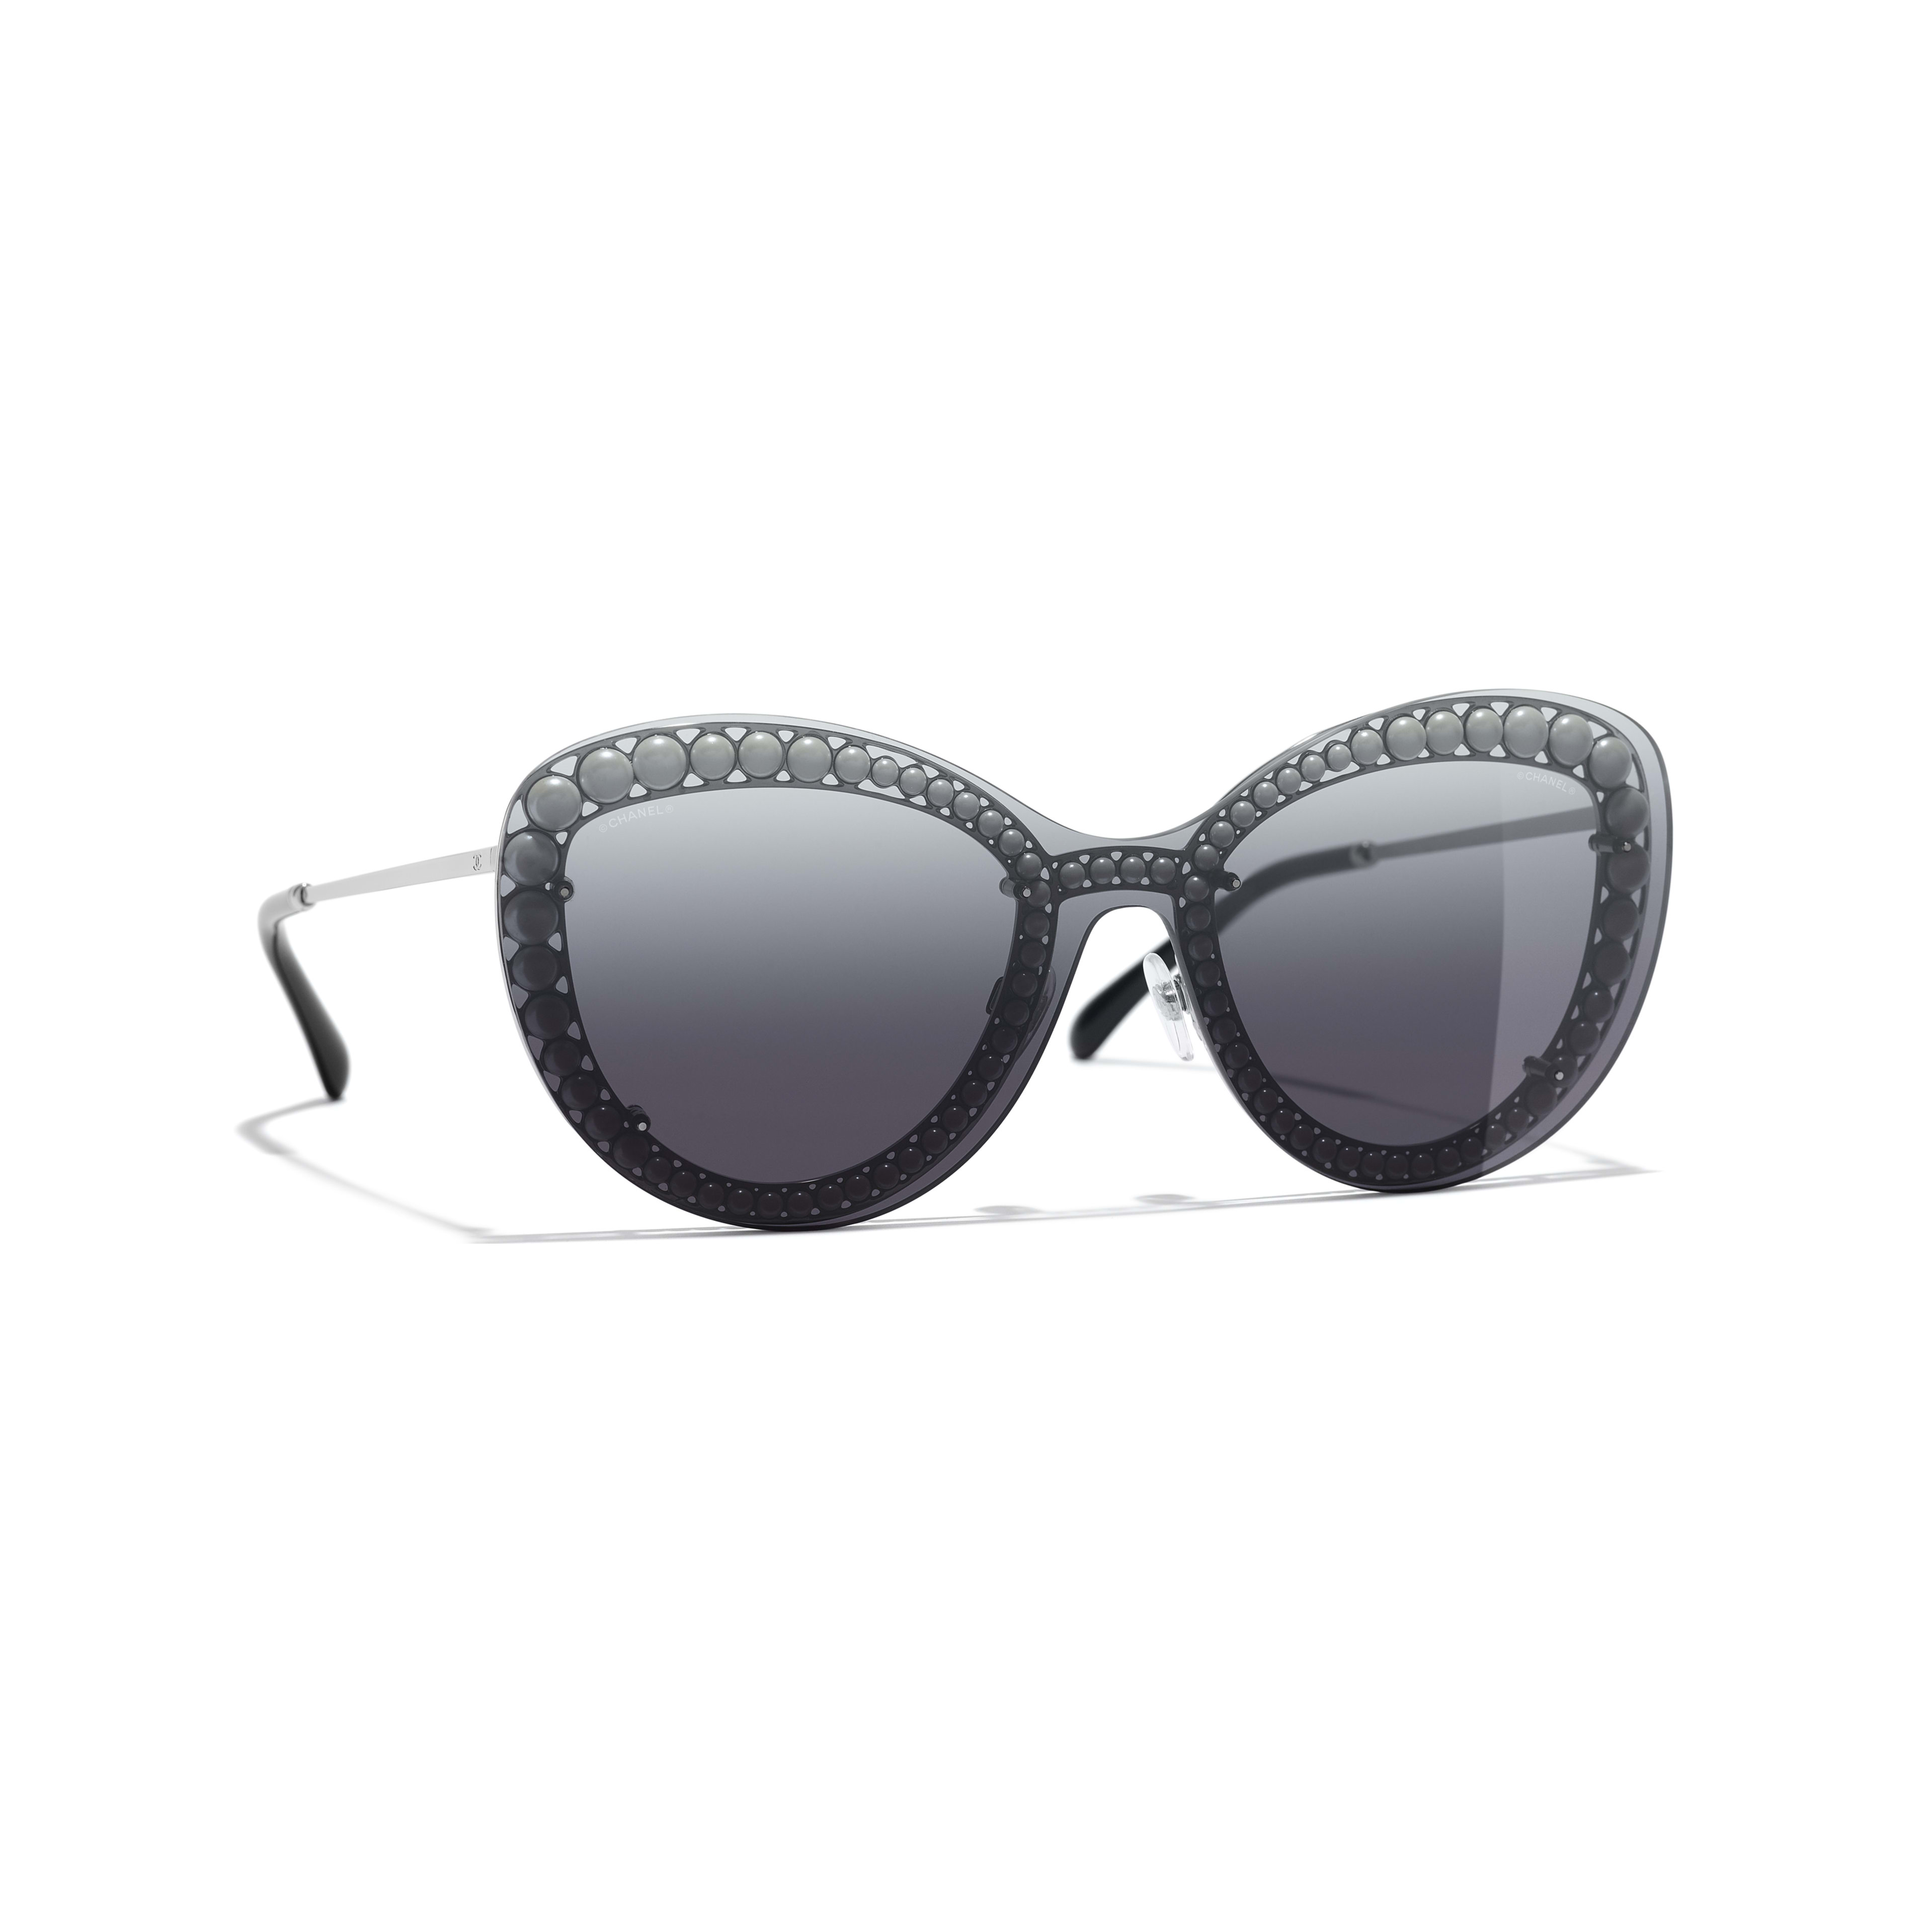 Butterfly Sunglasses - Silver - Metal & Imitation Pearls - Default view - see full sized version